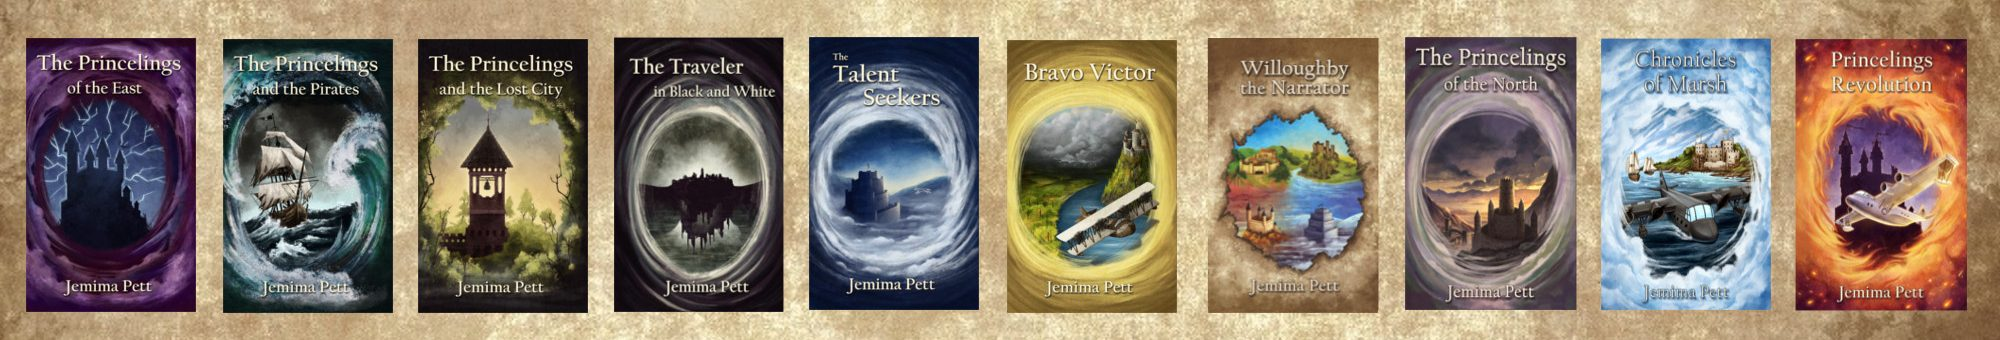 The Princelings Books: Jemima Pett